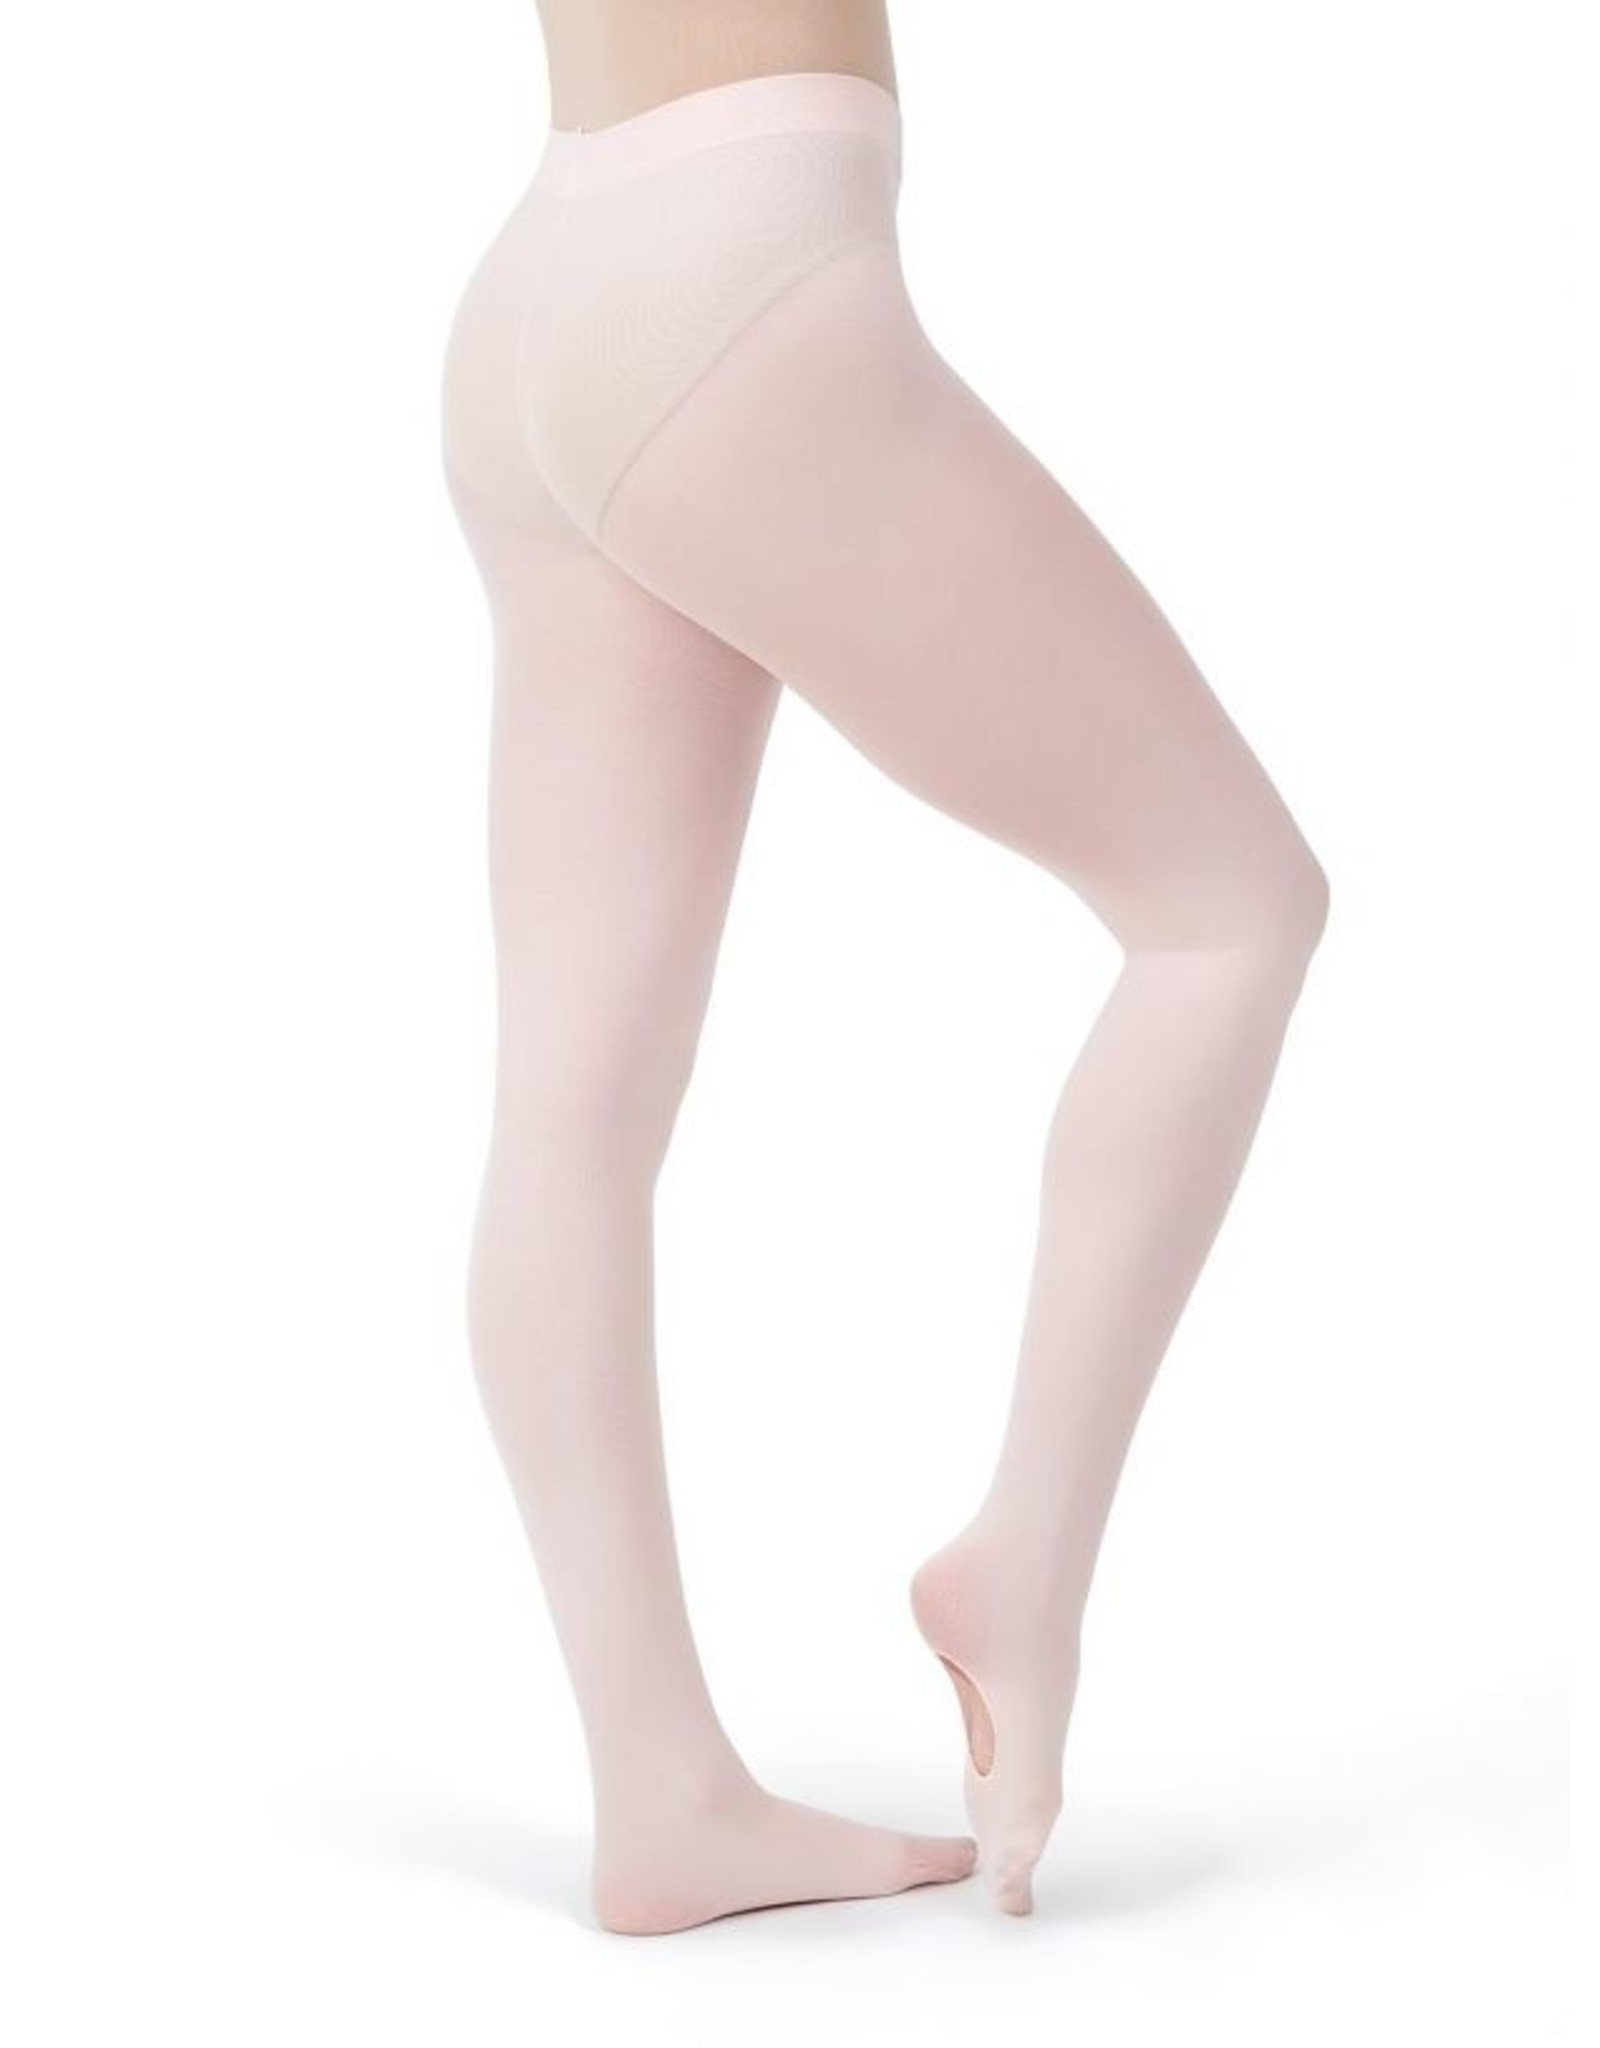 CHILDREN'S CAPEZIO ULTRA SOFT TRANSITION TIGHTS - 1916C